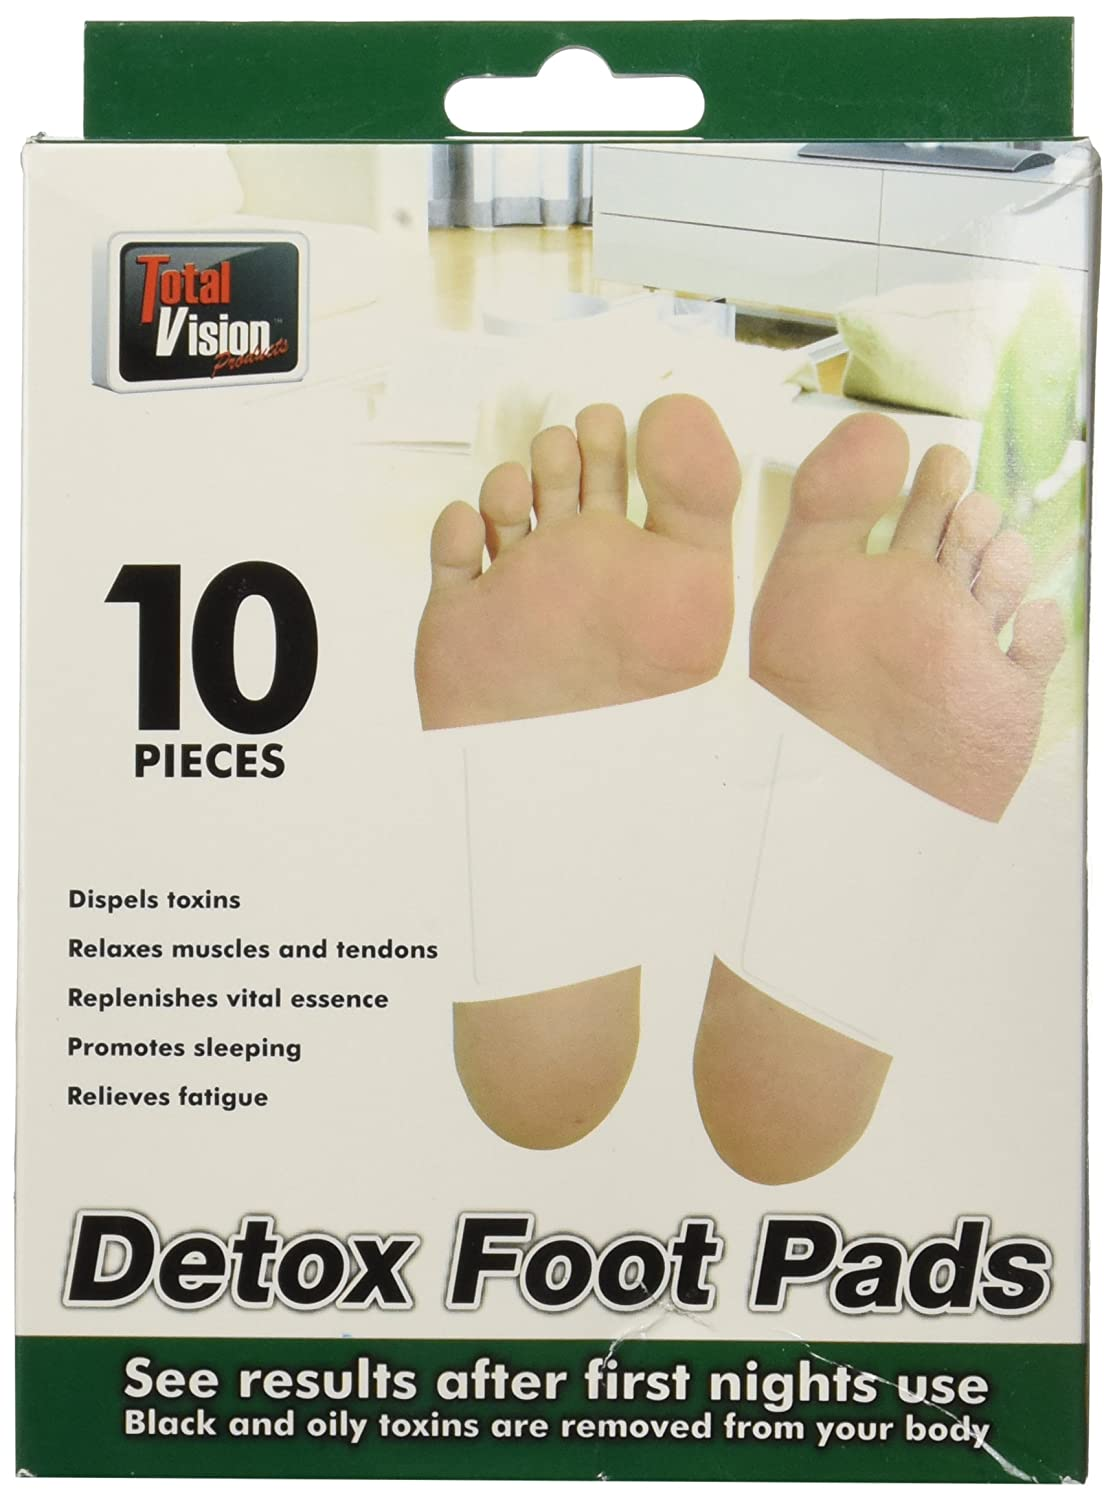 Total Vision Products Detox Foot Pads (10 pc Pack)